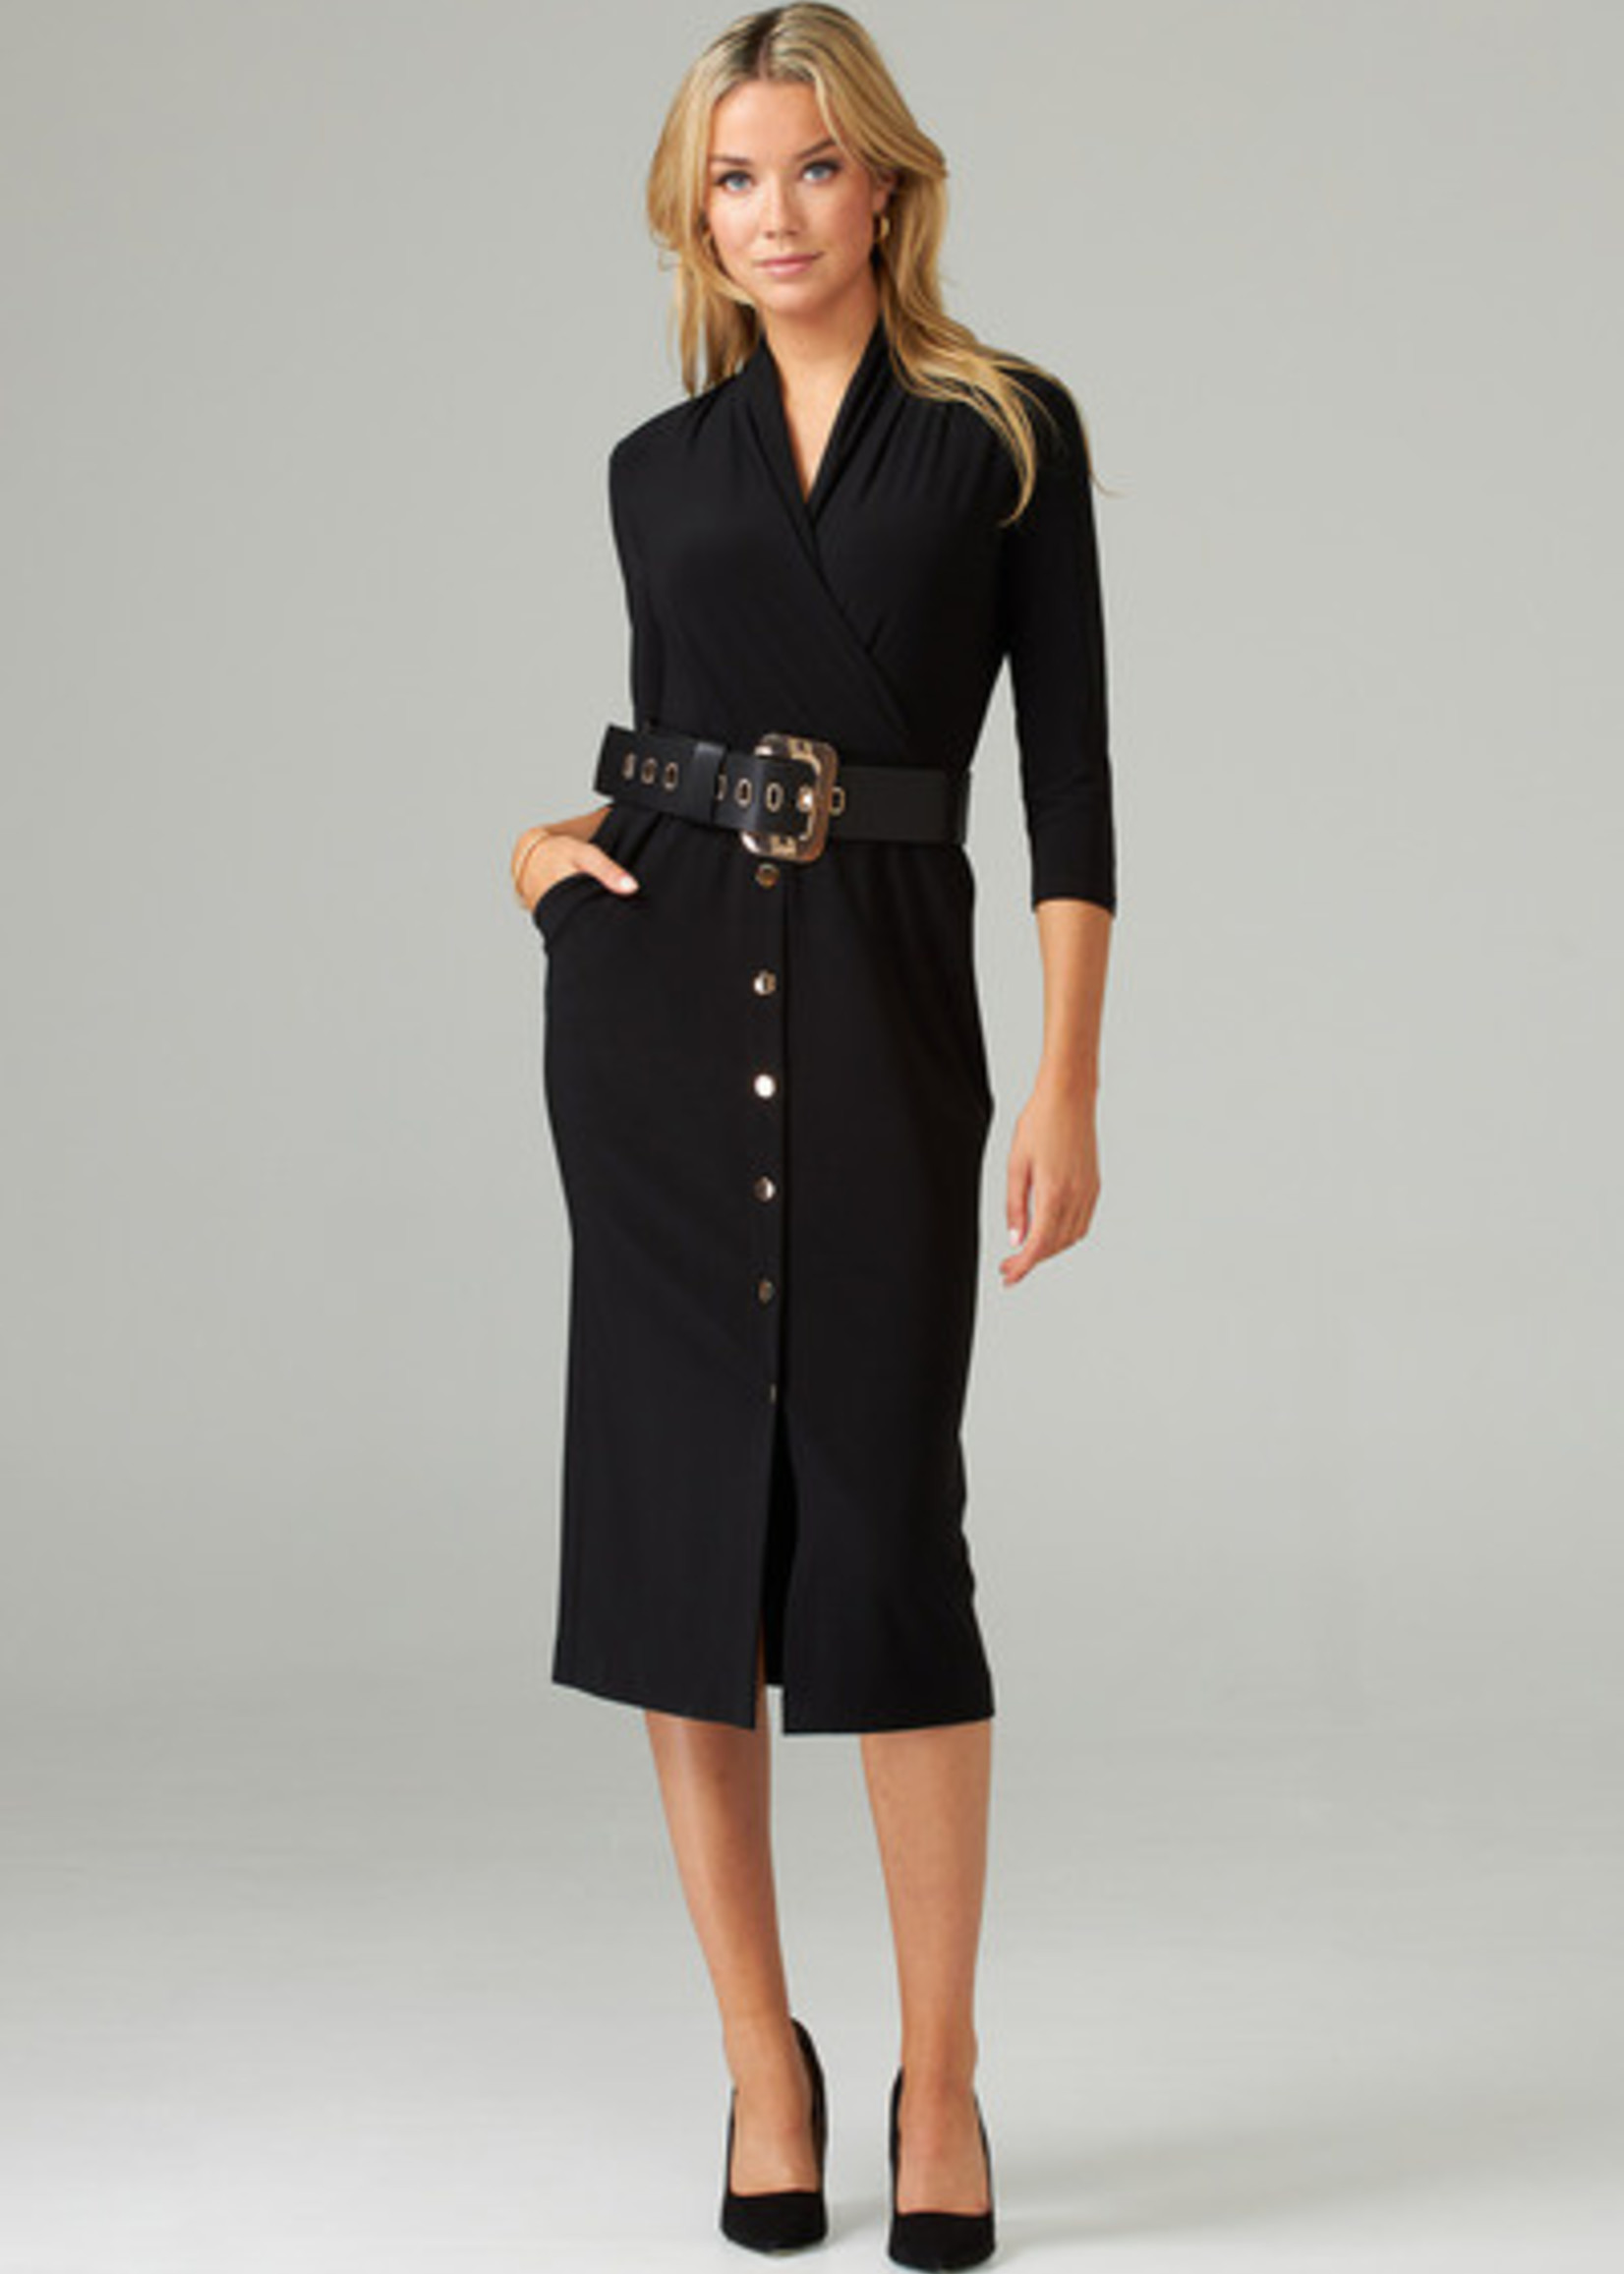 Joseph Ribkoff Black Dress with Belt and Buttons